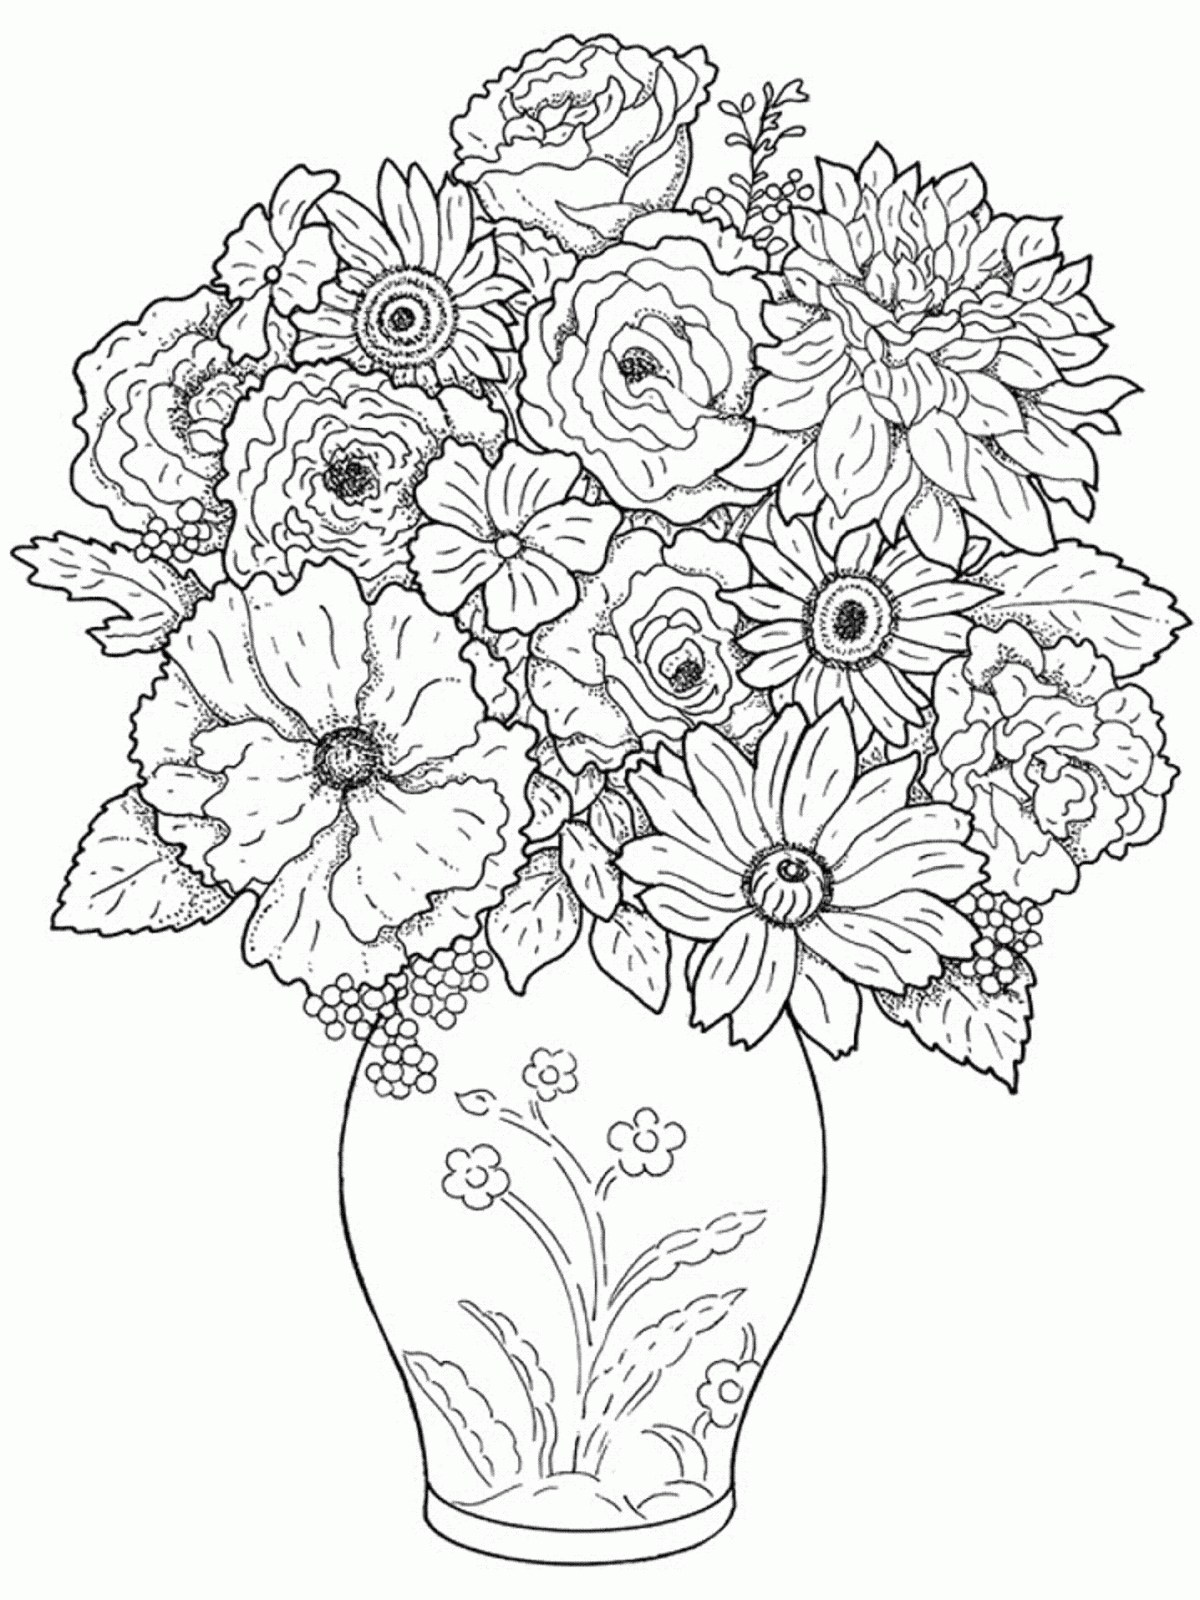 Flower Pot Drawing Images At Getdrawings